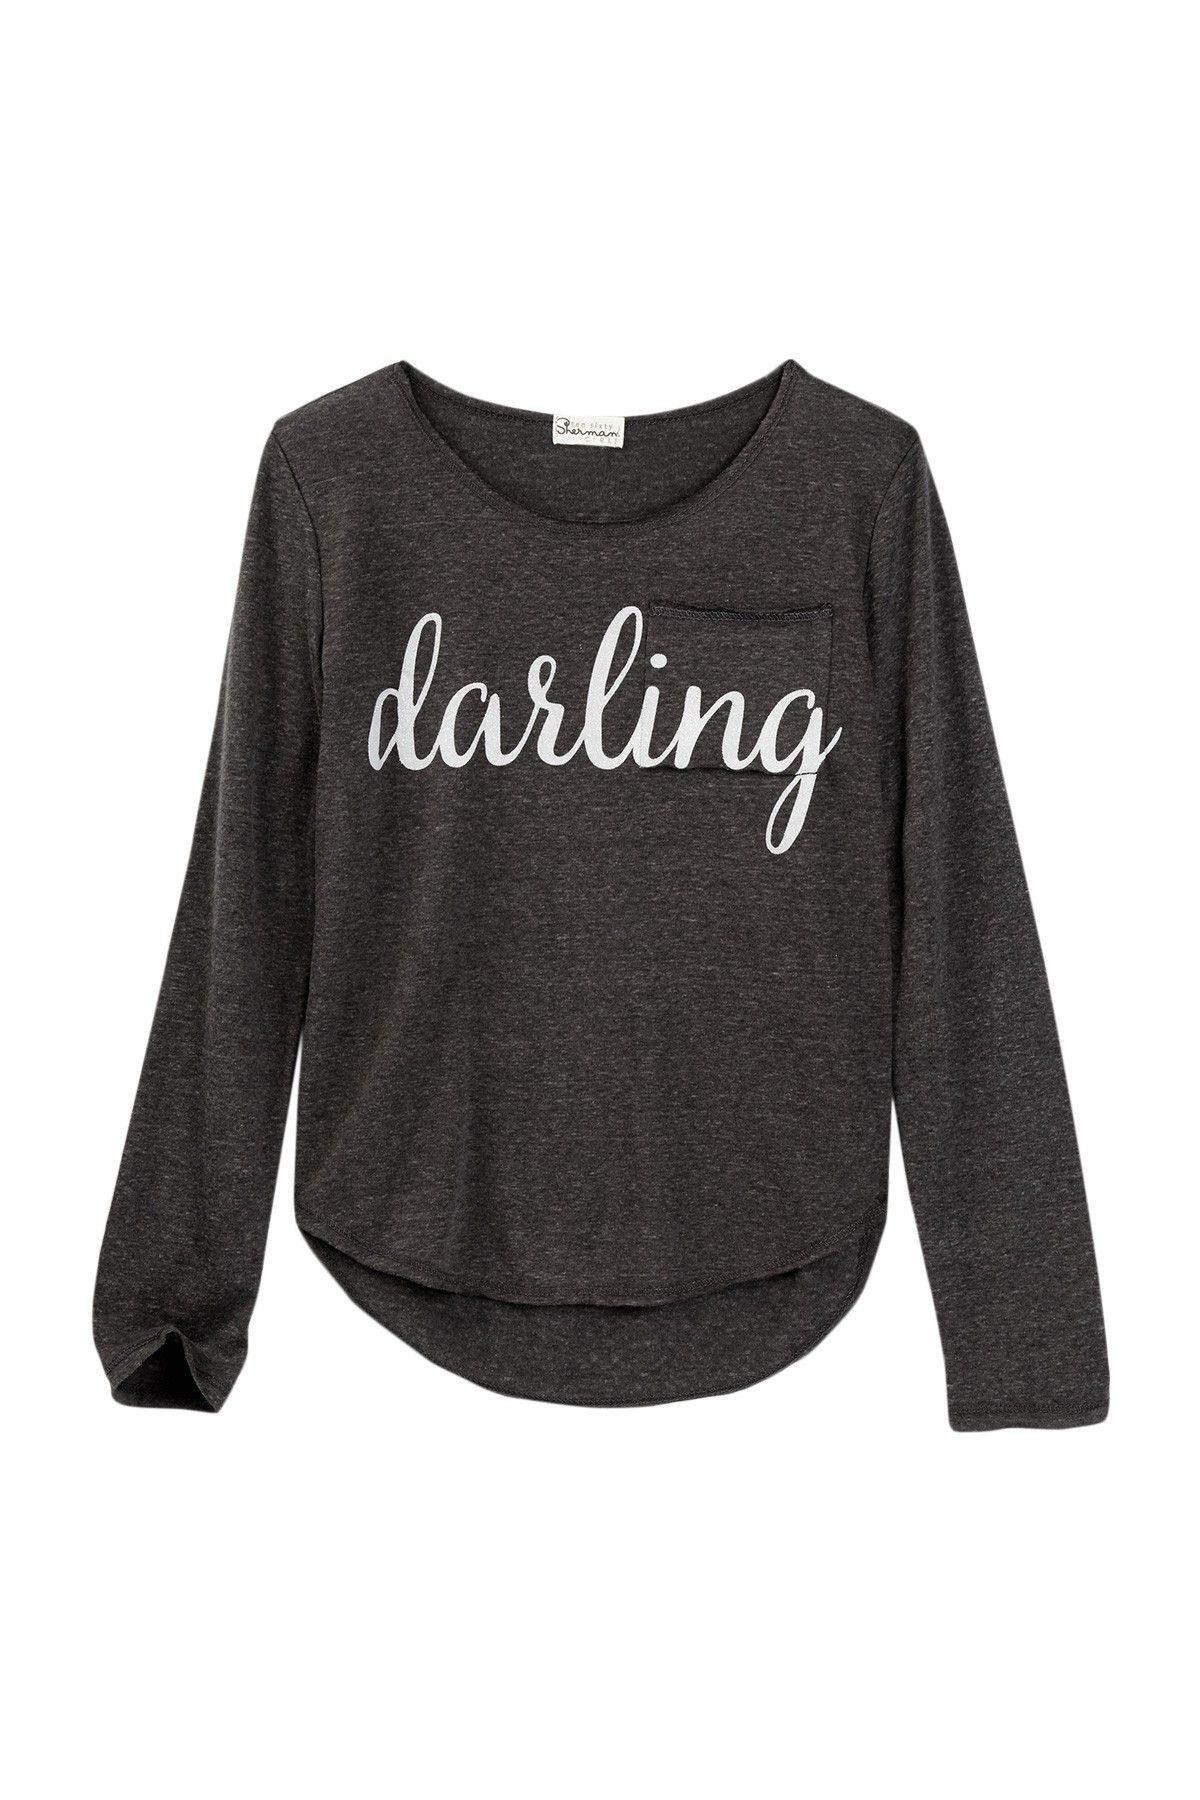 Darling Long Sleeve Pocket Tee (Big Girls) | Pinterest | Nordstrom ...